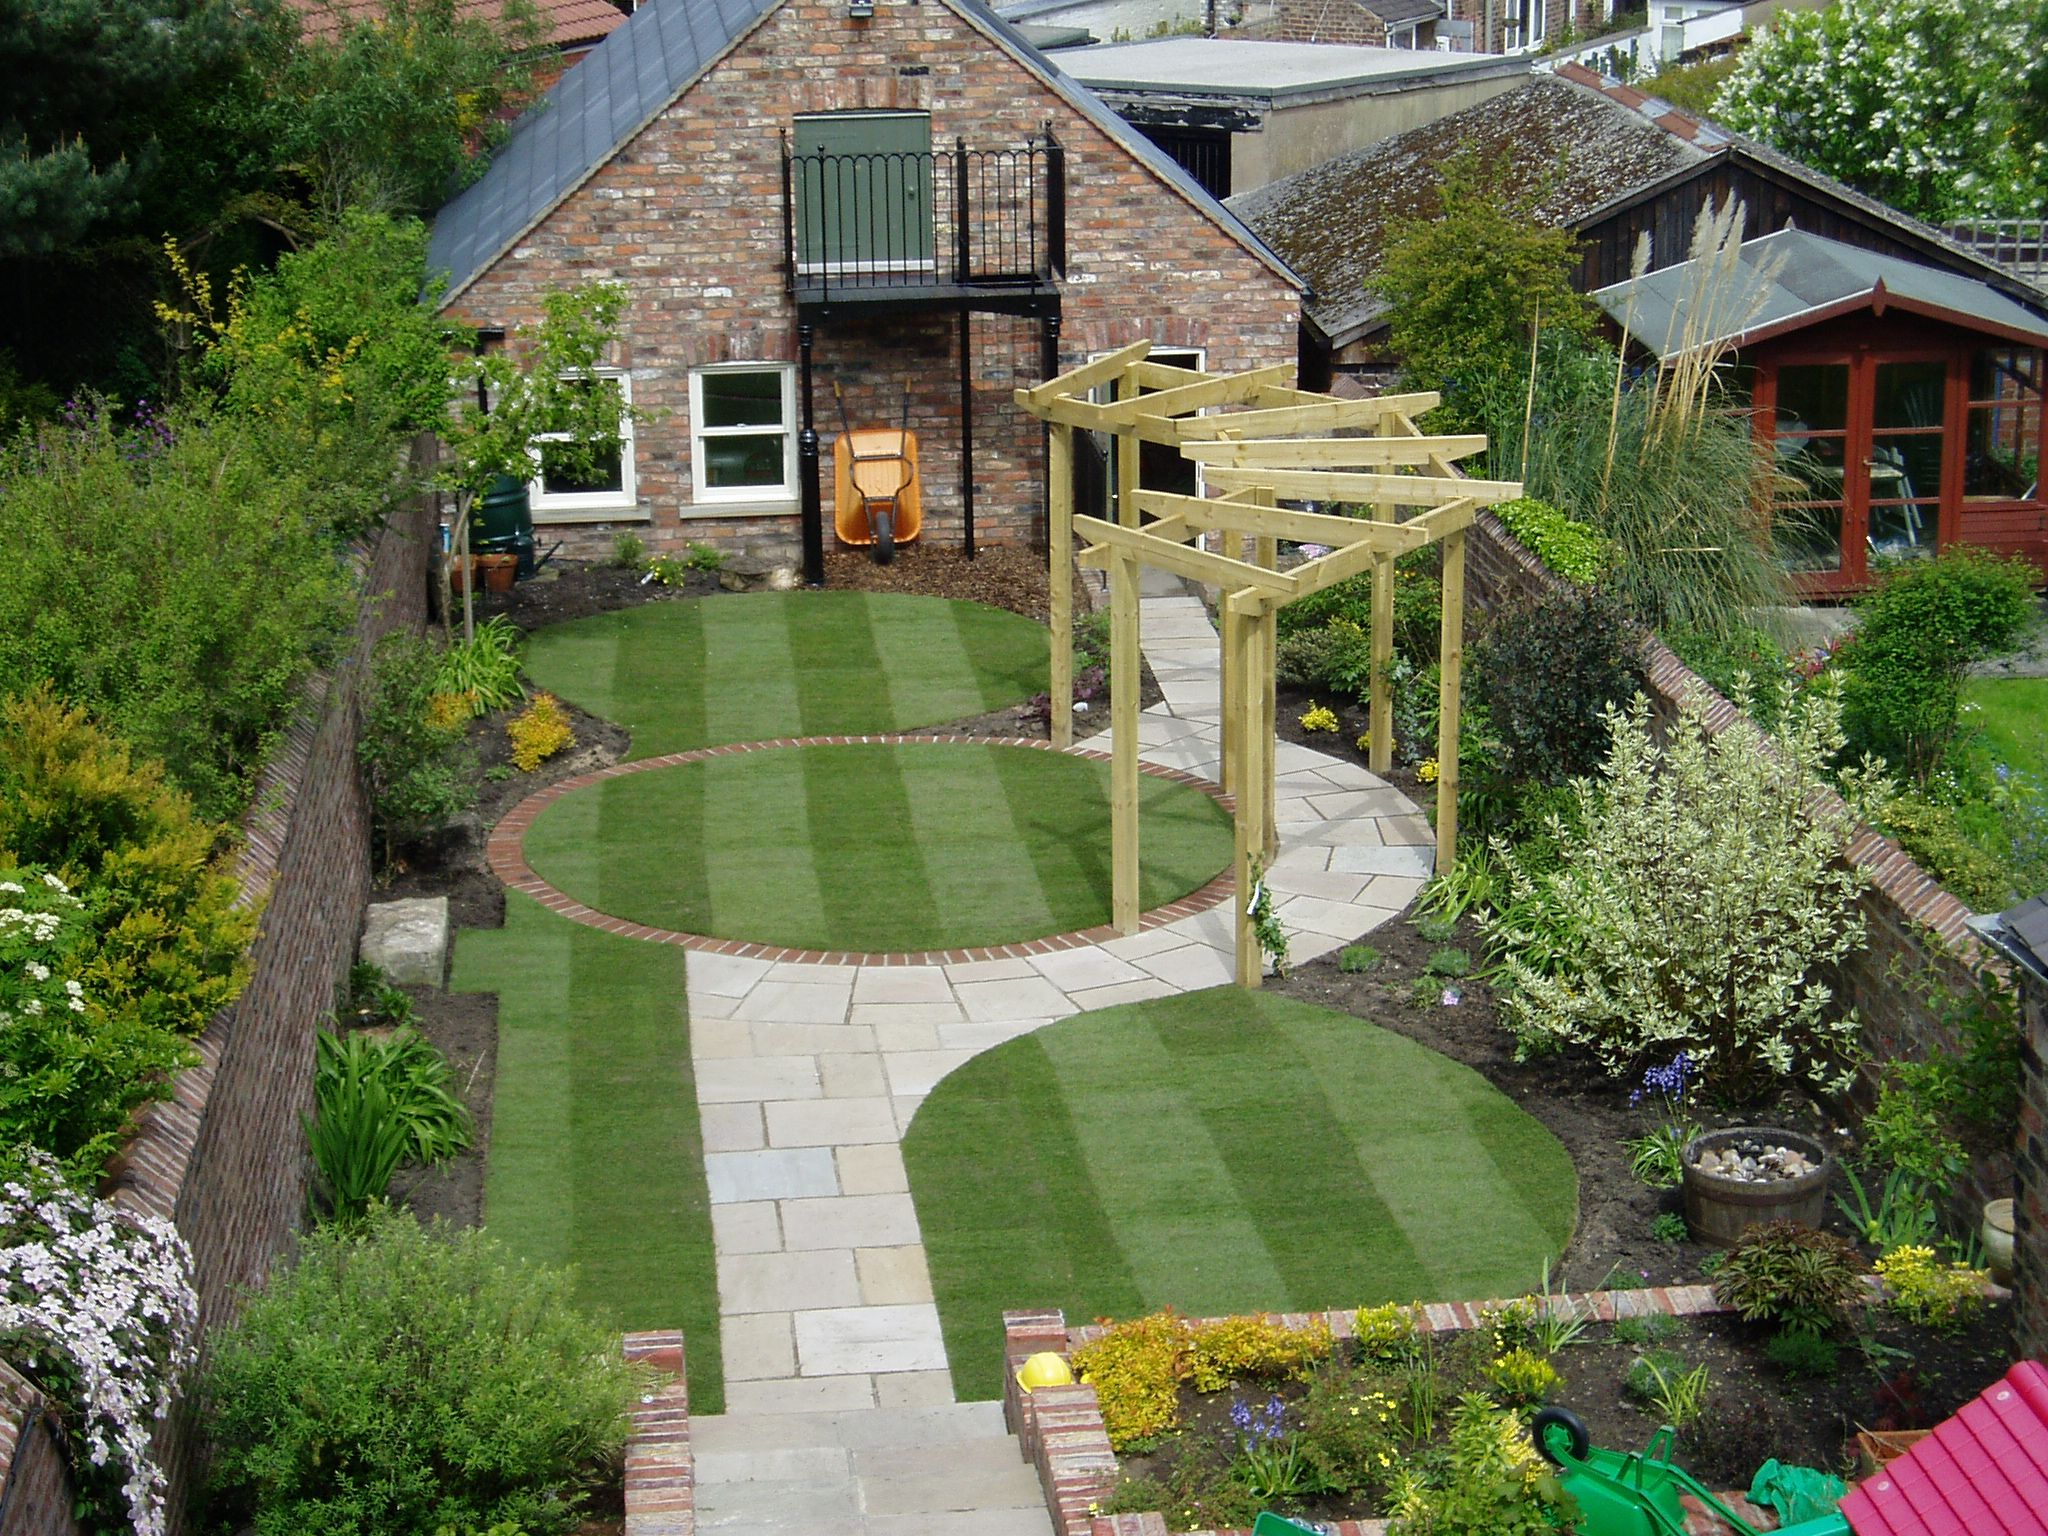 Best Ideas About Garden Design On Pinterest Landscape Design Back Garden Ideas And Front Gardens